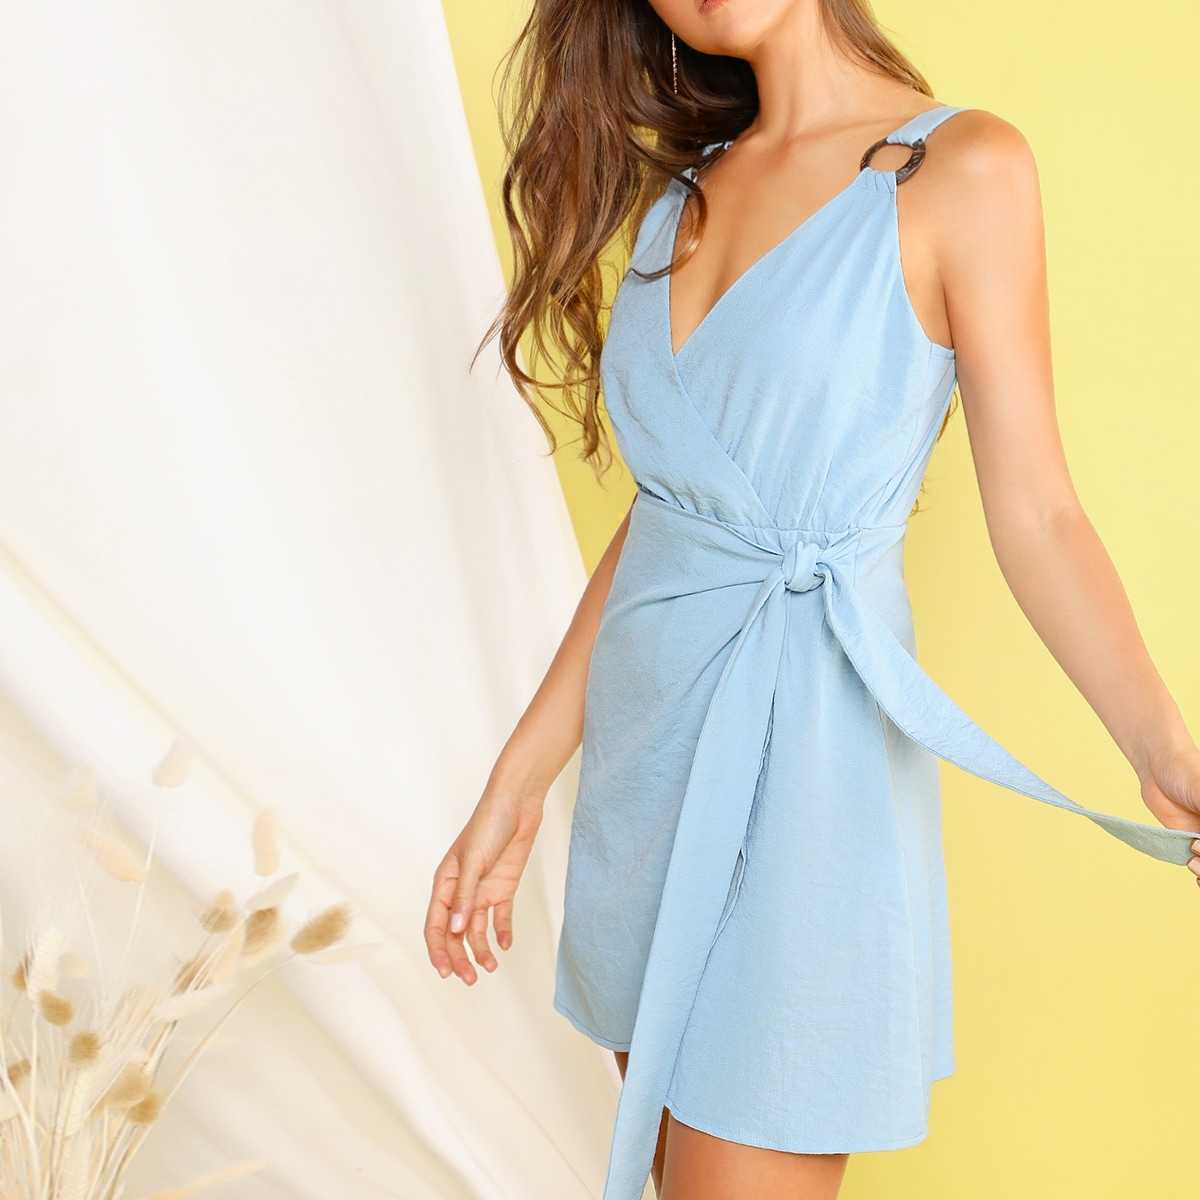 Keyhole Back Ring Detail Wrap Knot Dress in Blue Pastel by ROMWE on GOOFASH